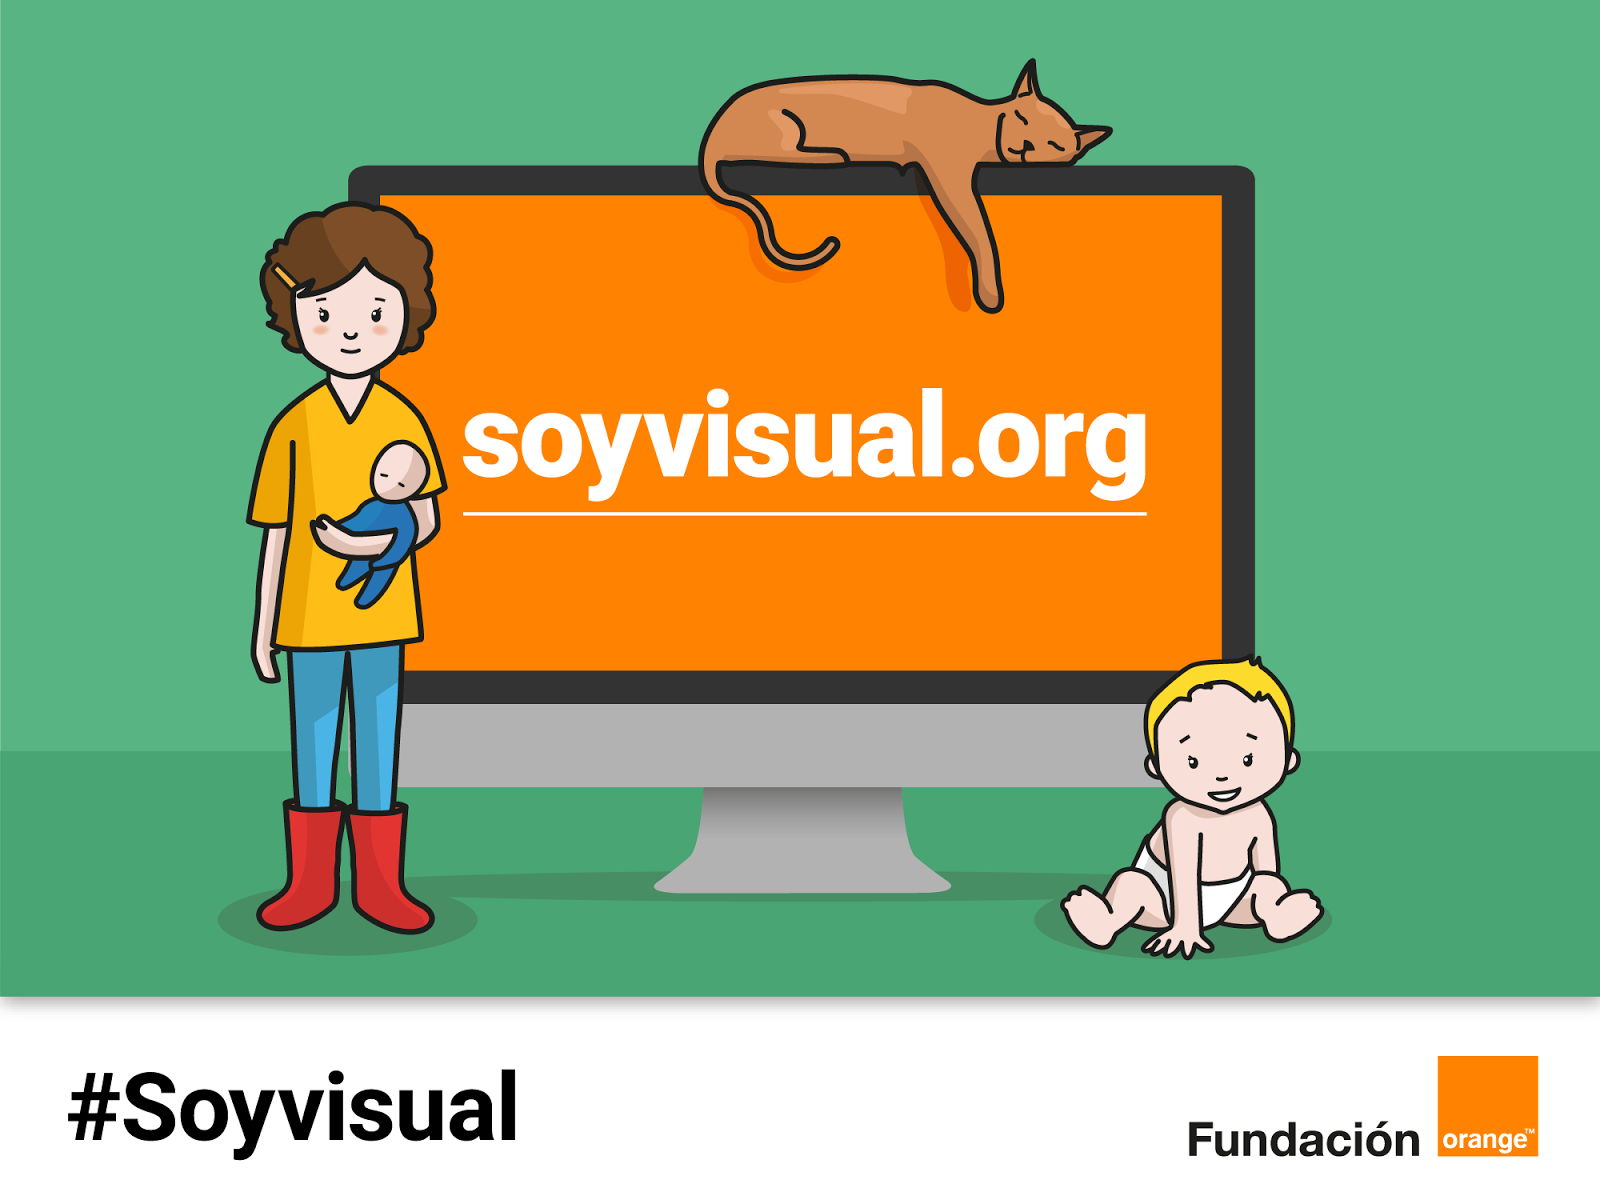 soyvisual.org